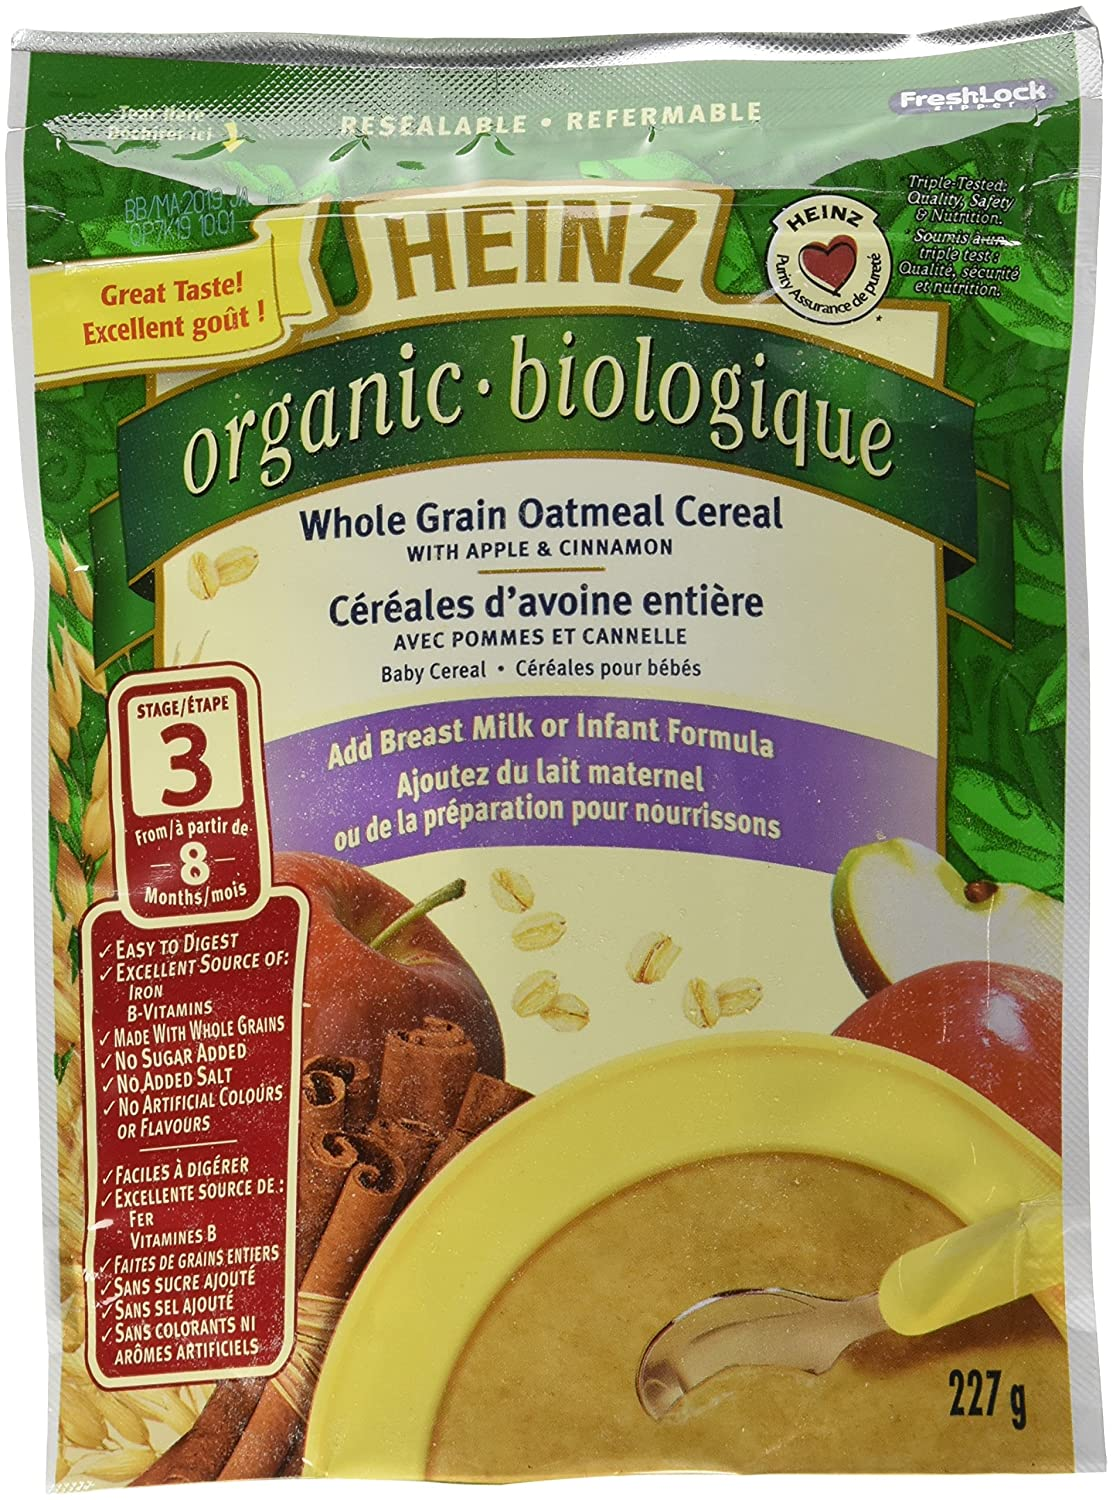 HEINZ Organic Whole Grain Oatmeal with Apple & Cinnamon - No Milk 227G x 6 Kraft Heinz Canada ULC